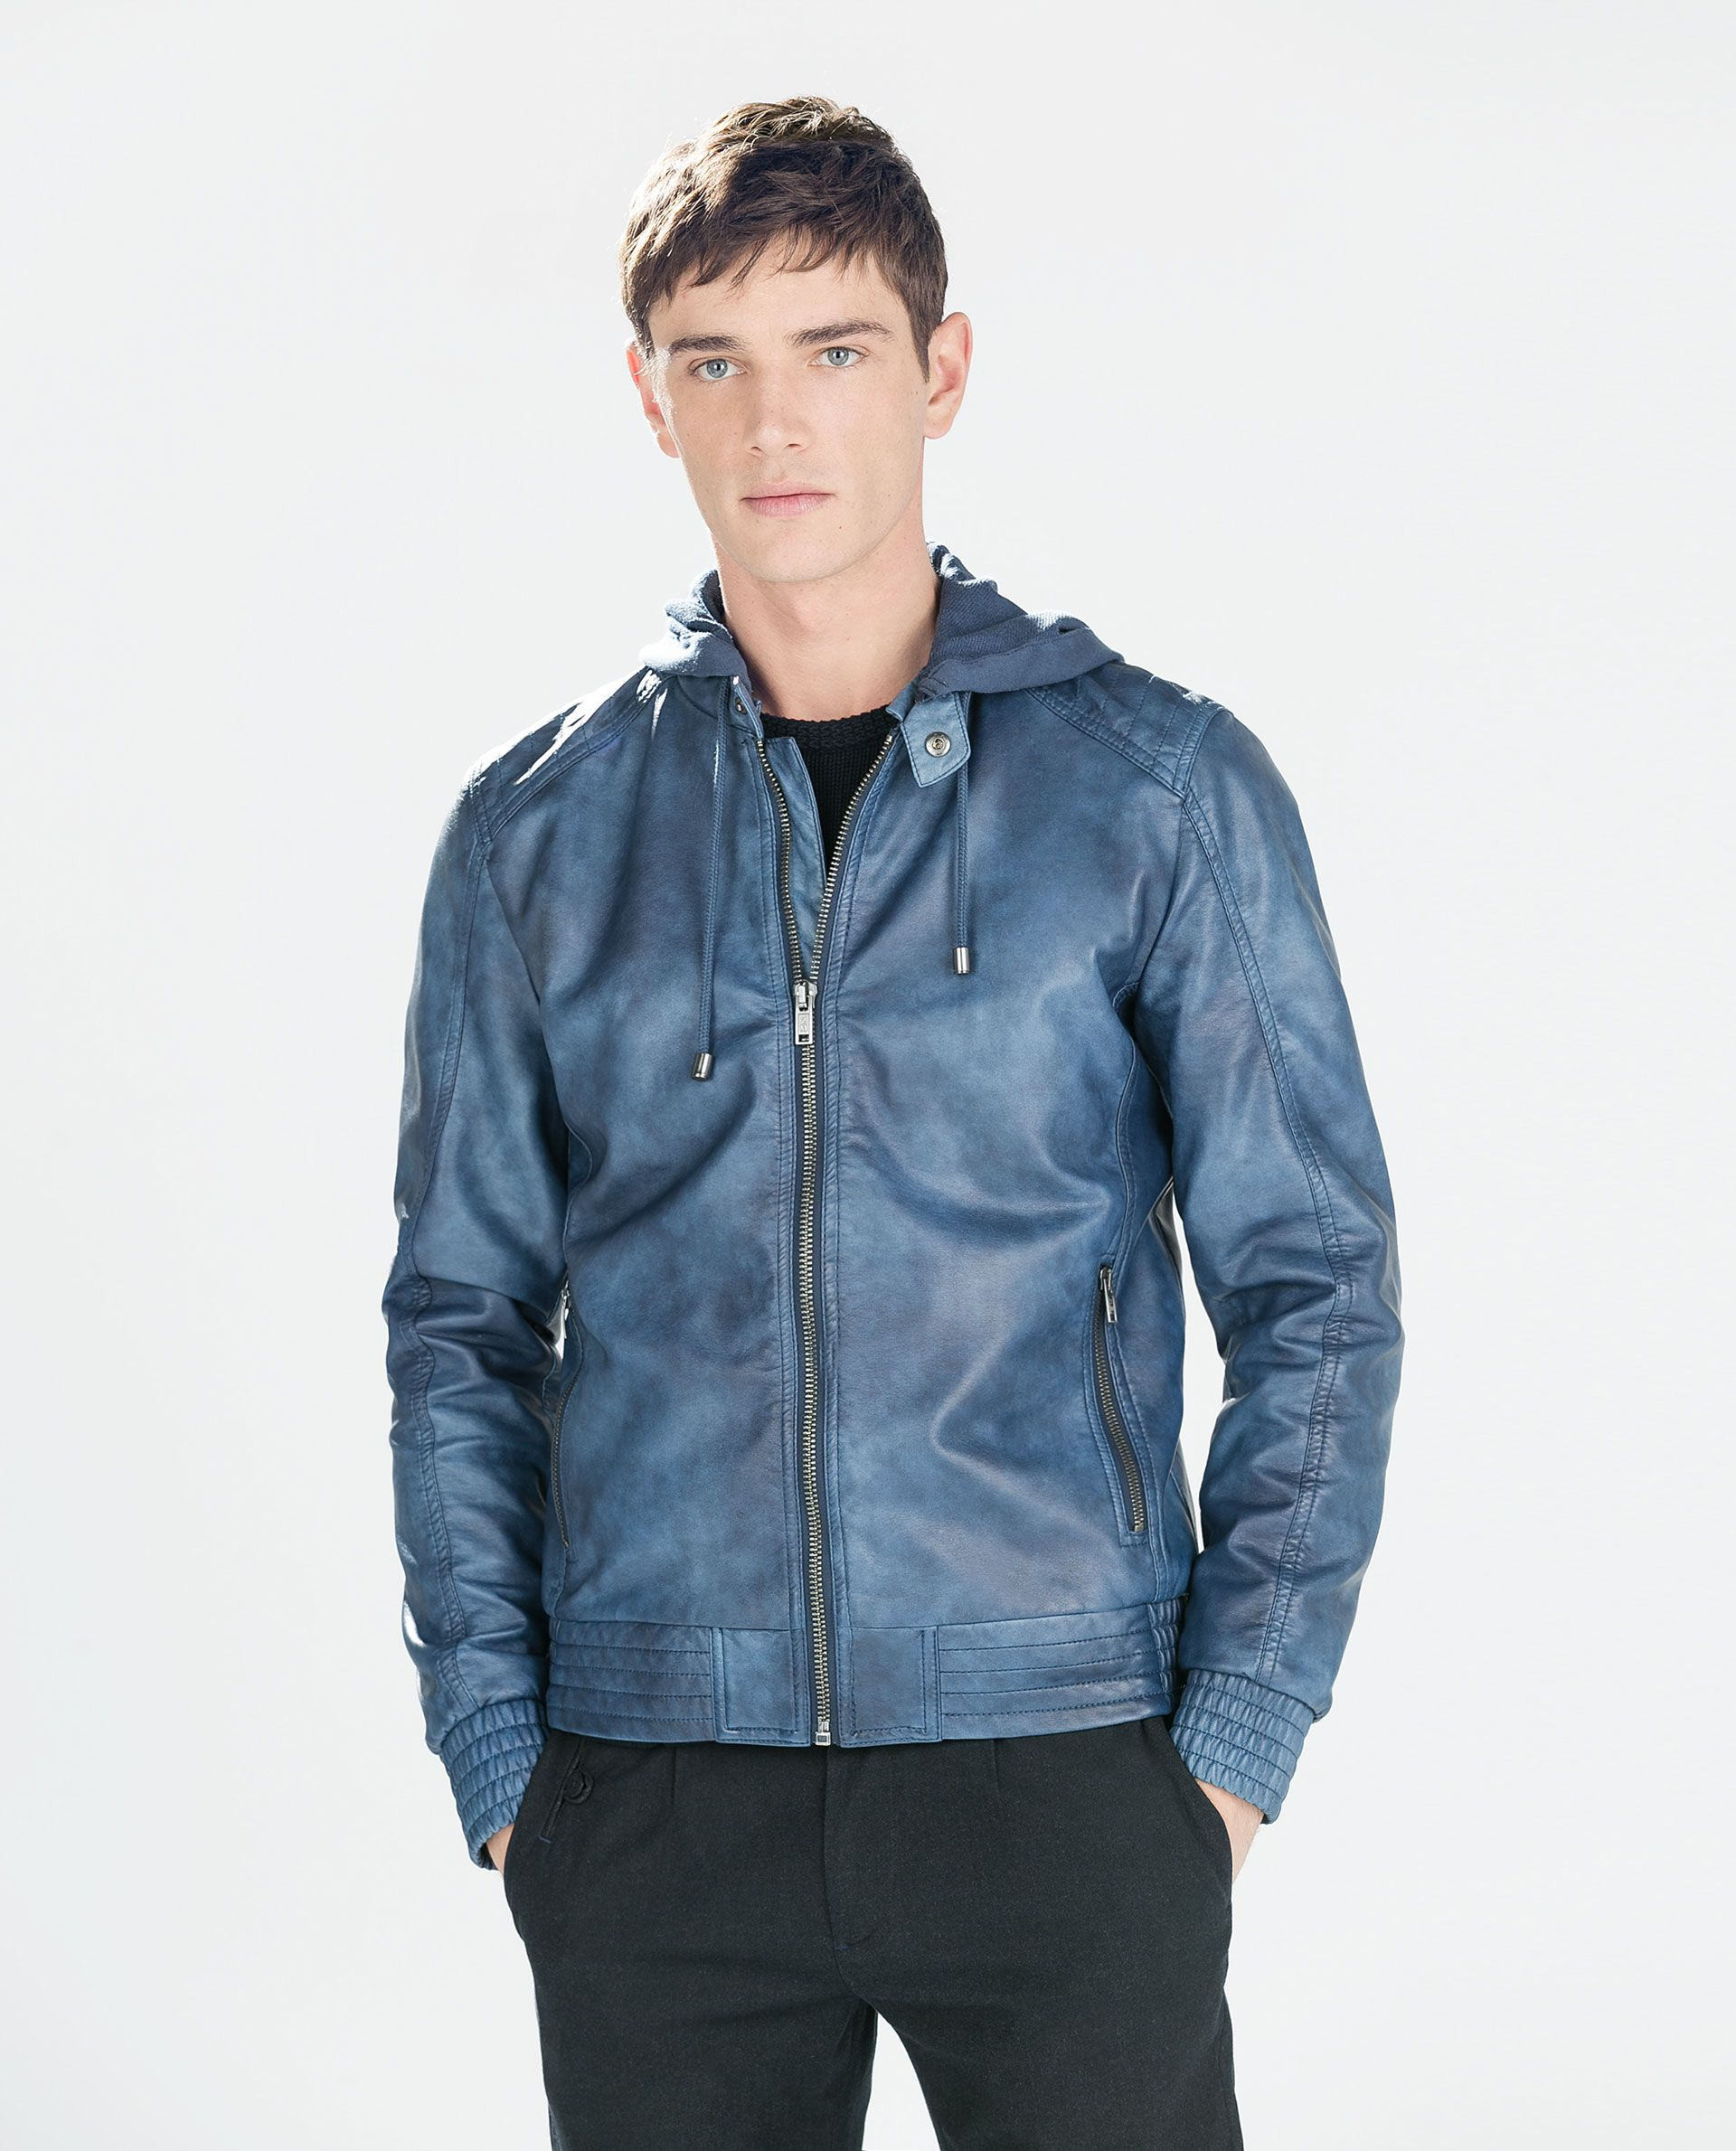 Blue Leather Jacket With Hood PEnnZq Leather jacket with